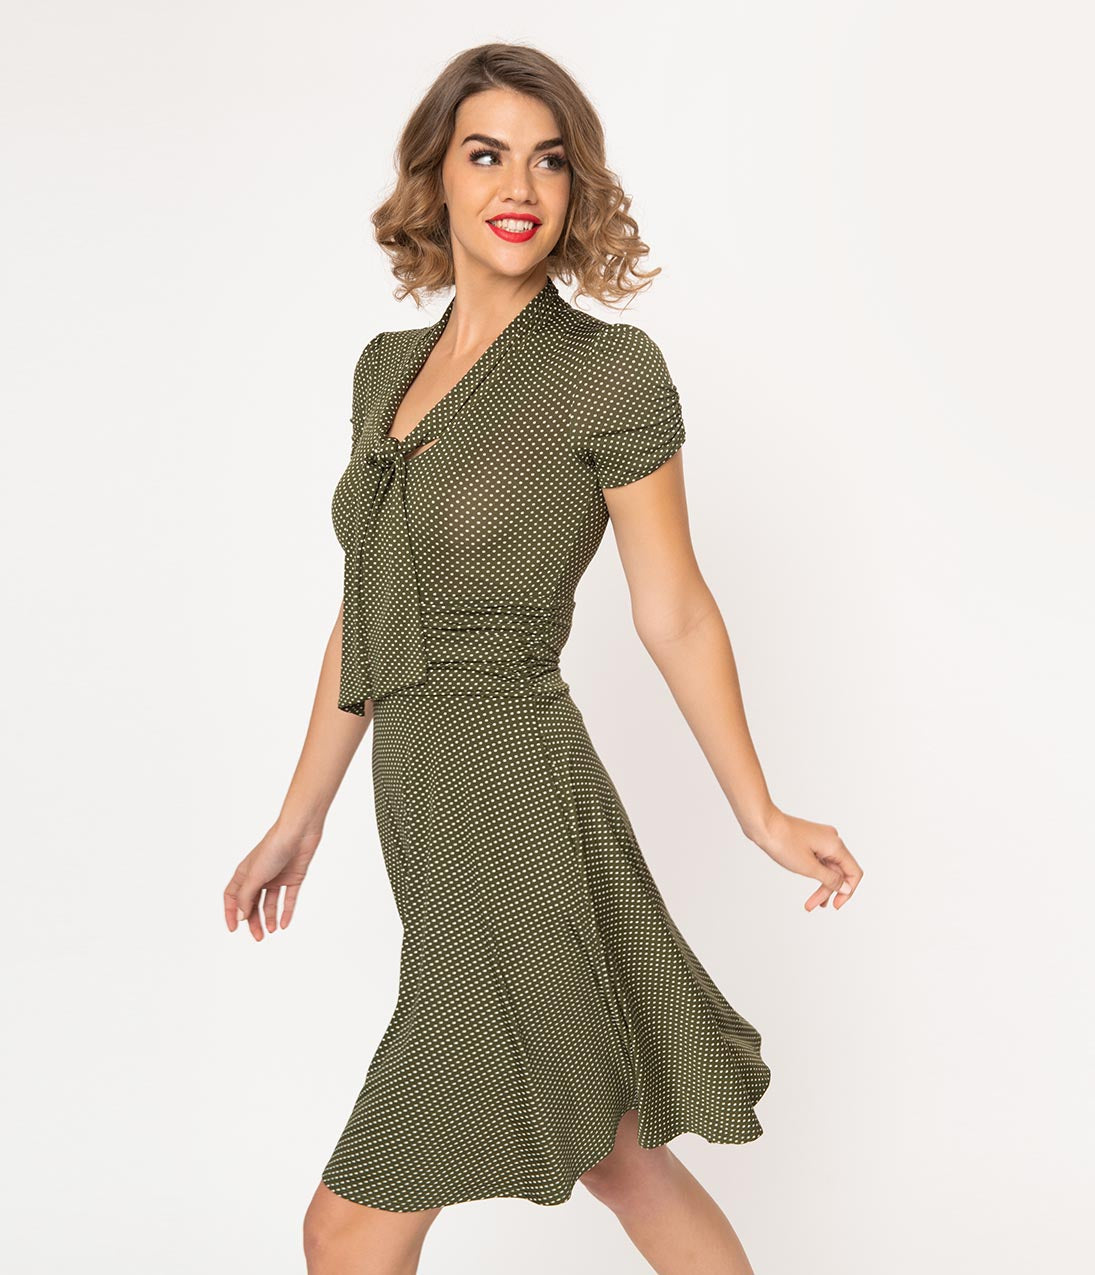 Vintage Tea Dresses, Floral Tea Dresses, Tea Length Dresses Folter 1940S Style Olive Green  White Pin Dot Neck Tie Swing Dress $72.00 AT vintagedancer.com